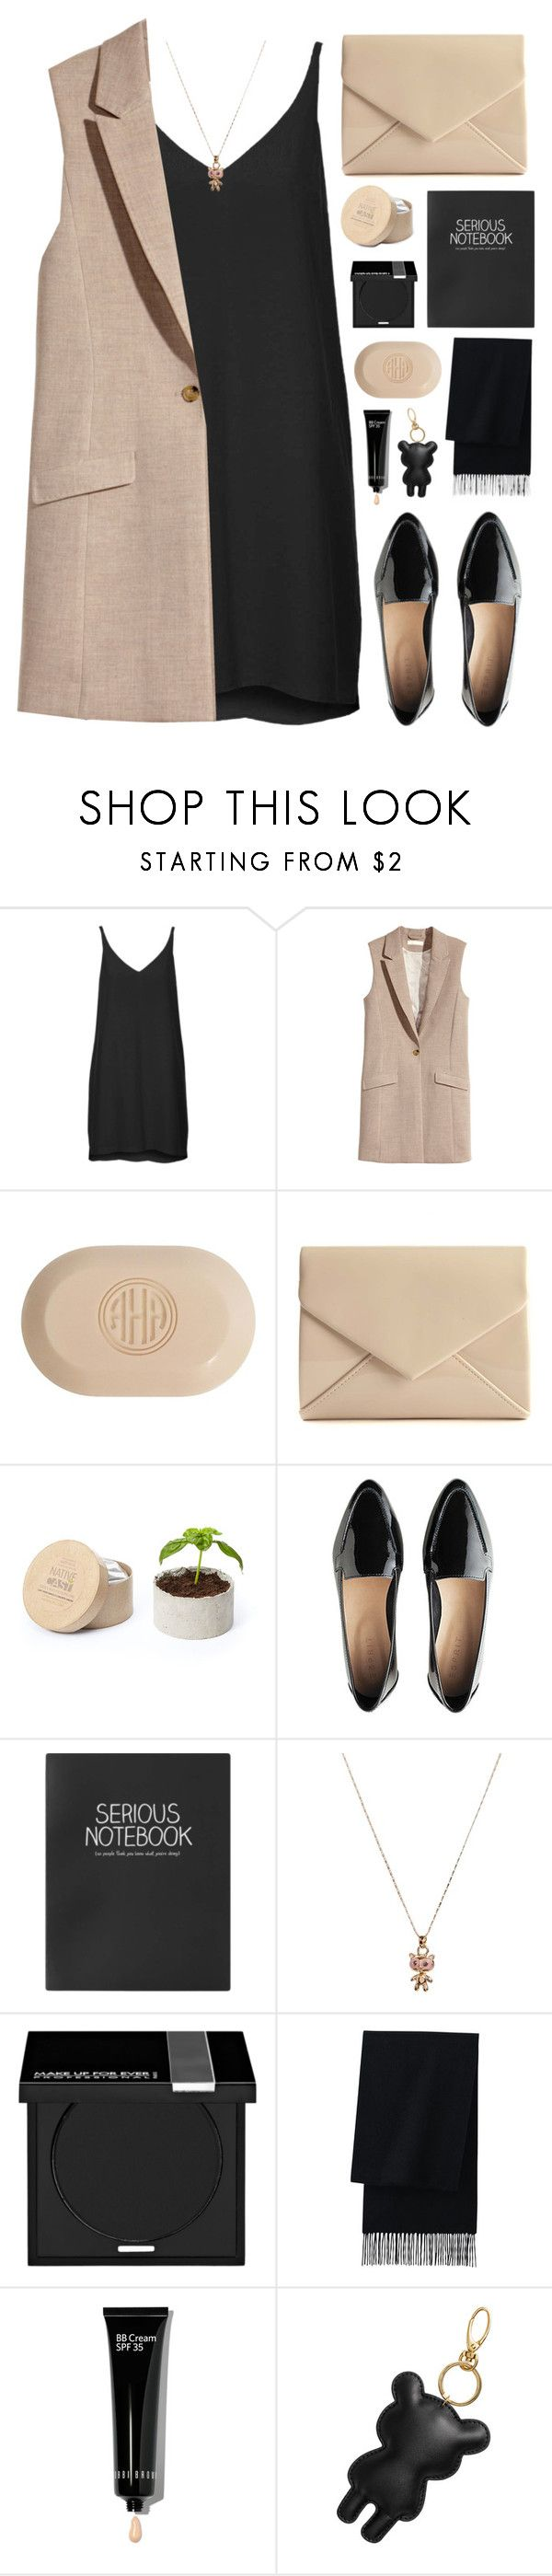 """Call me baby"" by tania-maria ❤ liked on Polyvore featuring Topshop, H&M, Carved Solutions, Johnny Loves Rosie, MAKE UP FOR EVER, Uniqlo and Bobbi Brown Cosmetics"